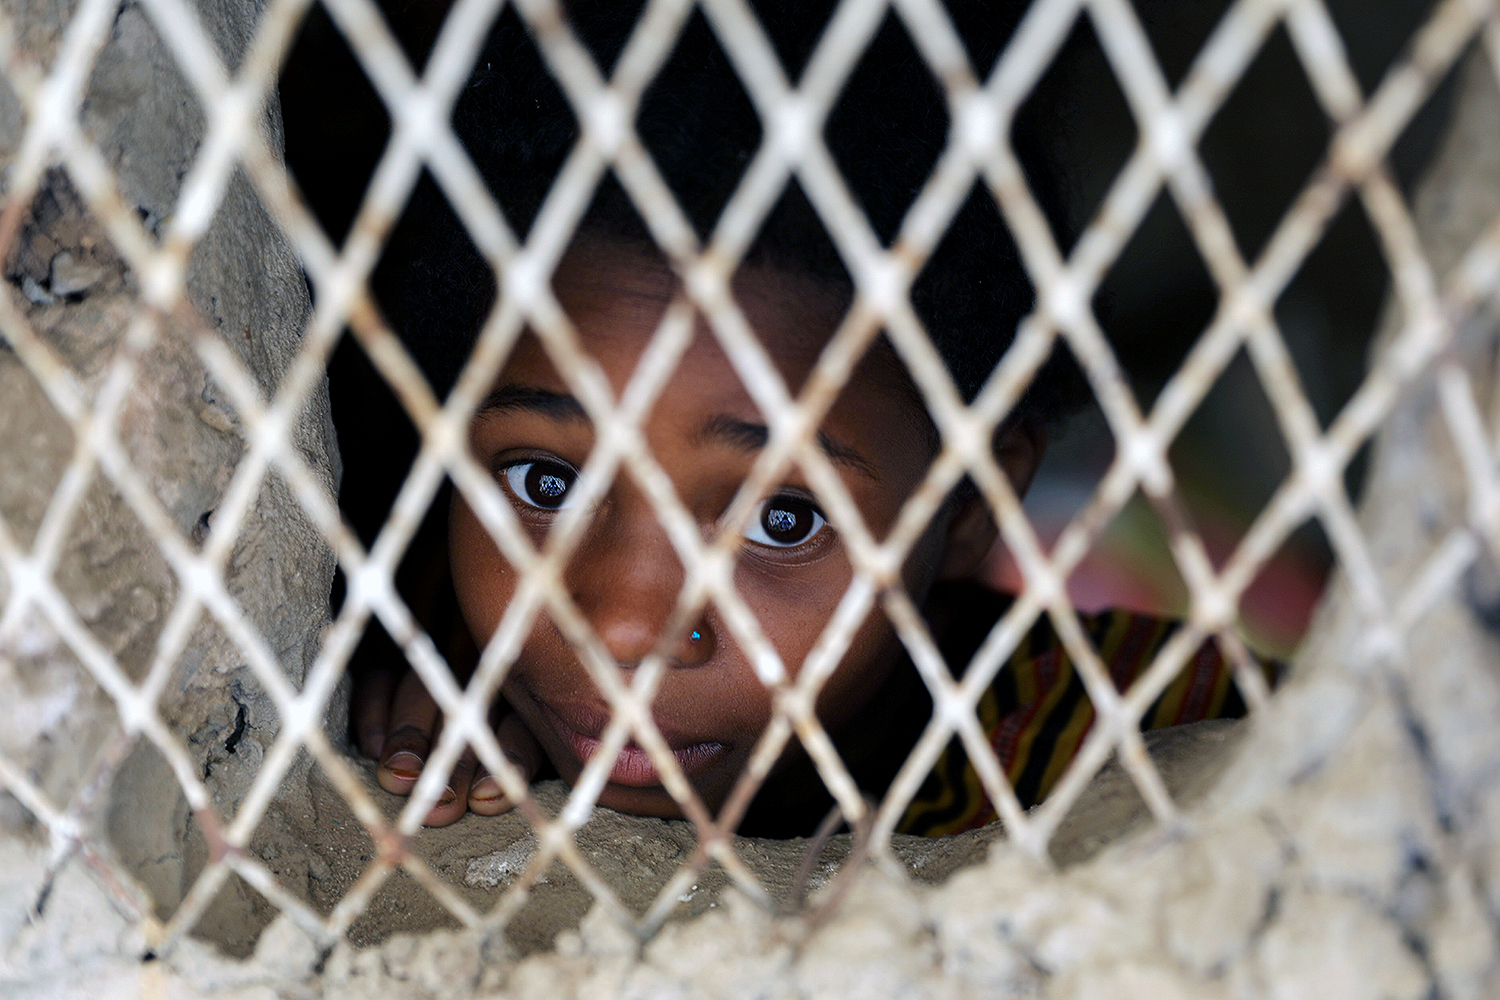 A boy looks out from a window of his family's hut in Sanaa, Yemen, on July 26. Khaled Abdullah/REUTERS